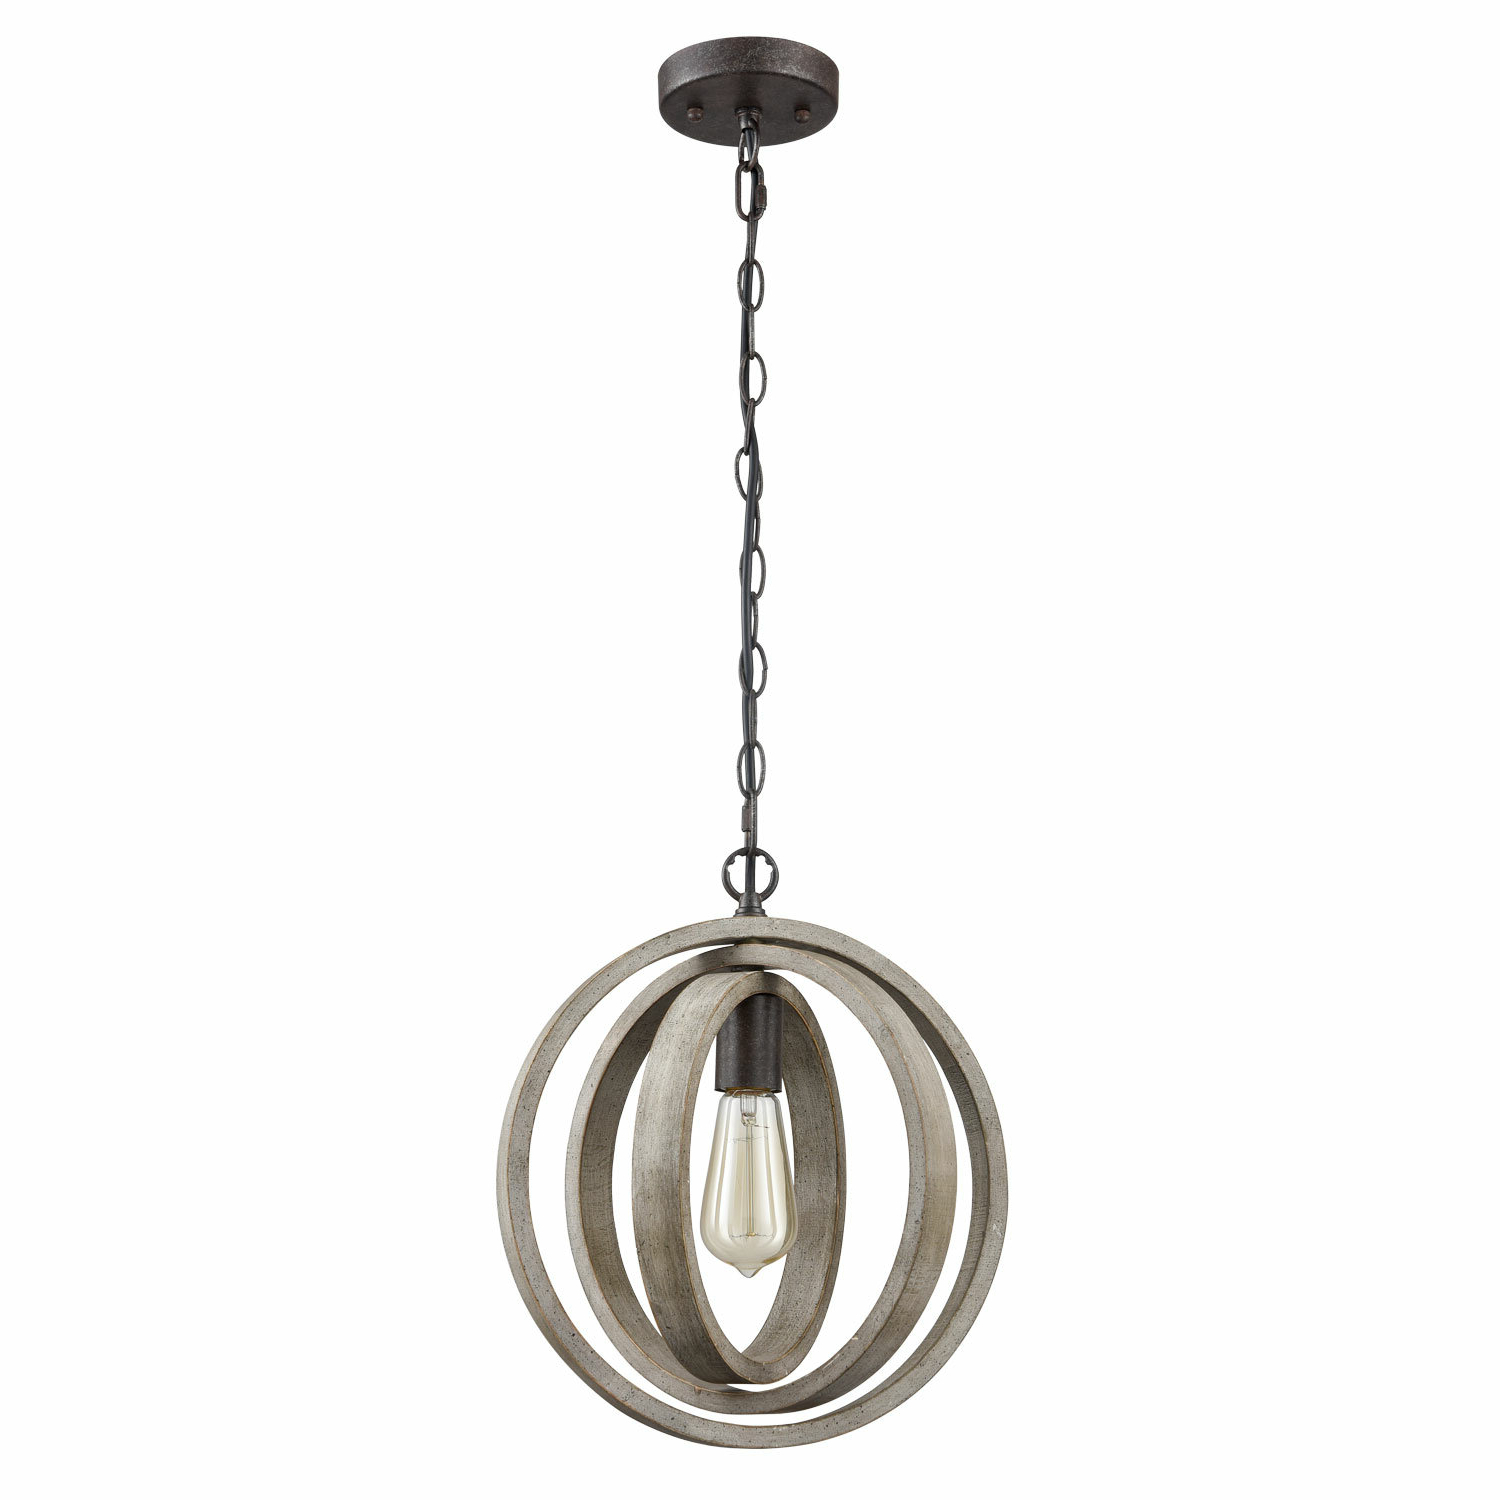 Most Popular Adame Modern Rustic 1 Light Globe Pendant Intended For Irwin 1 Light Single Globe Pendants (Gallery 6 of 20)